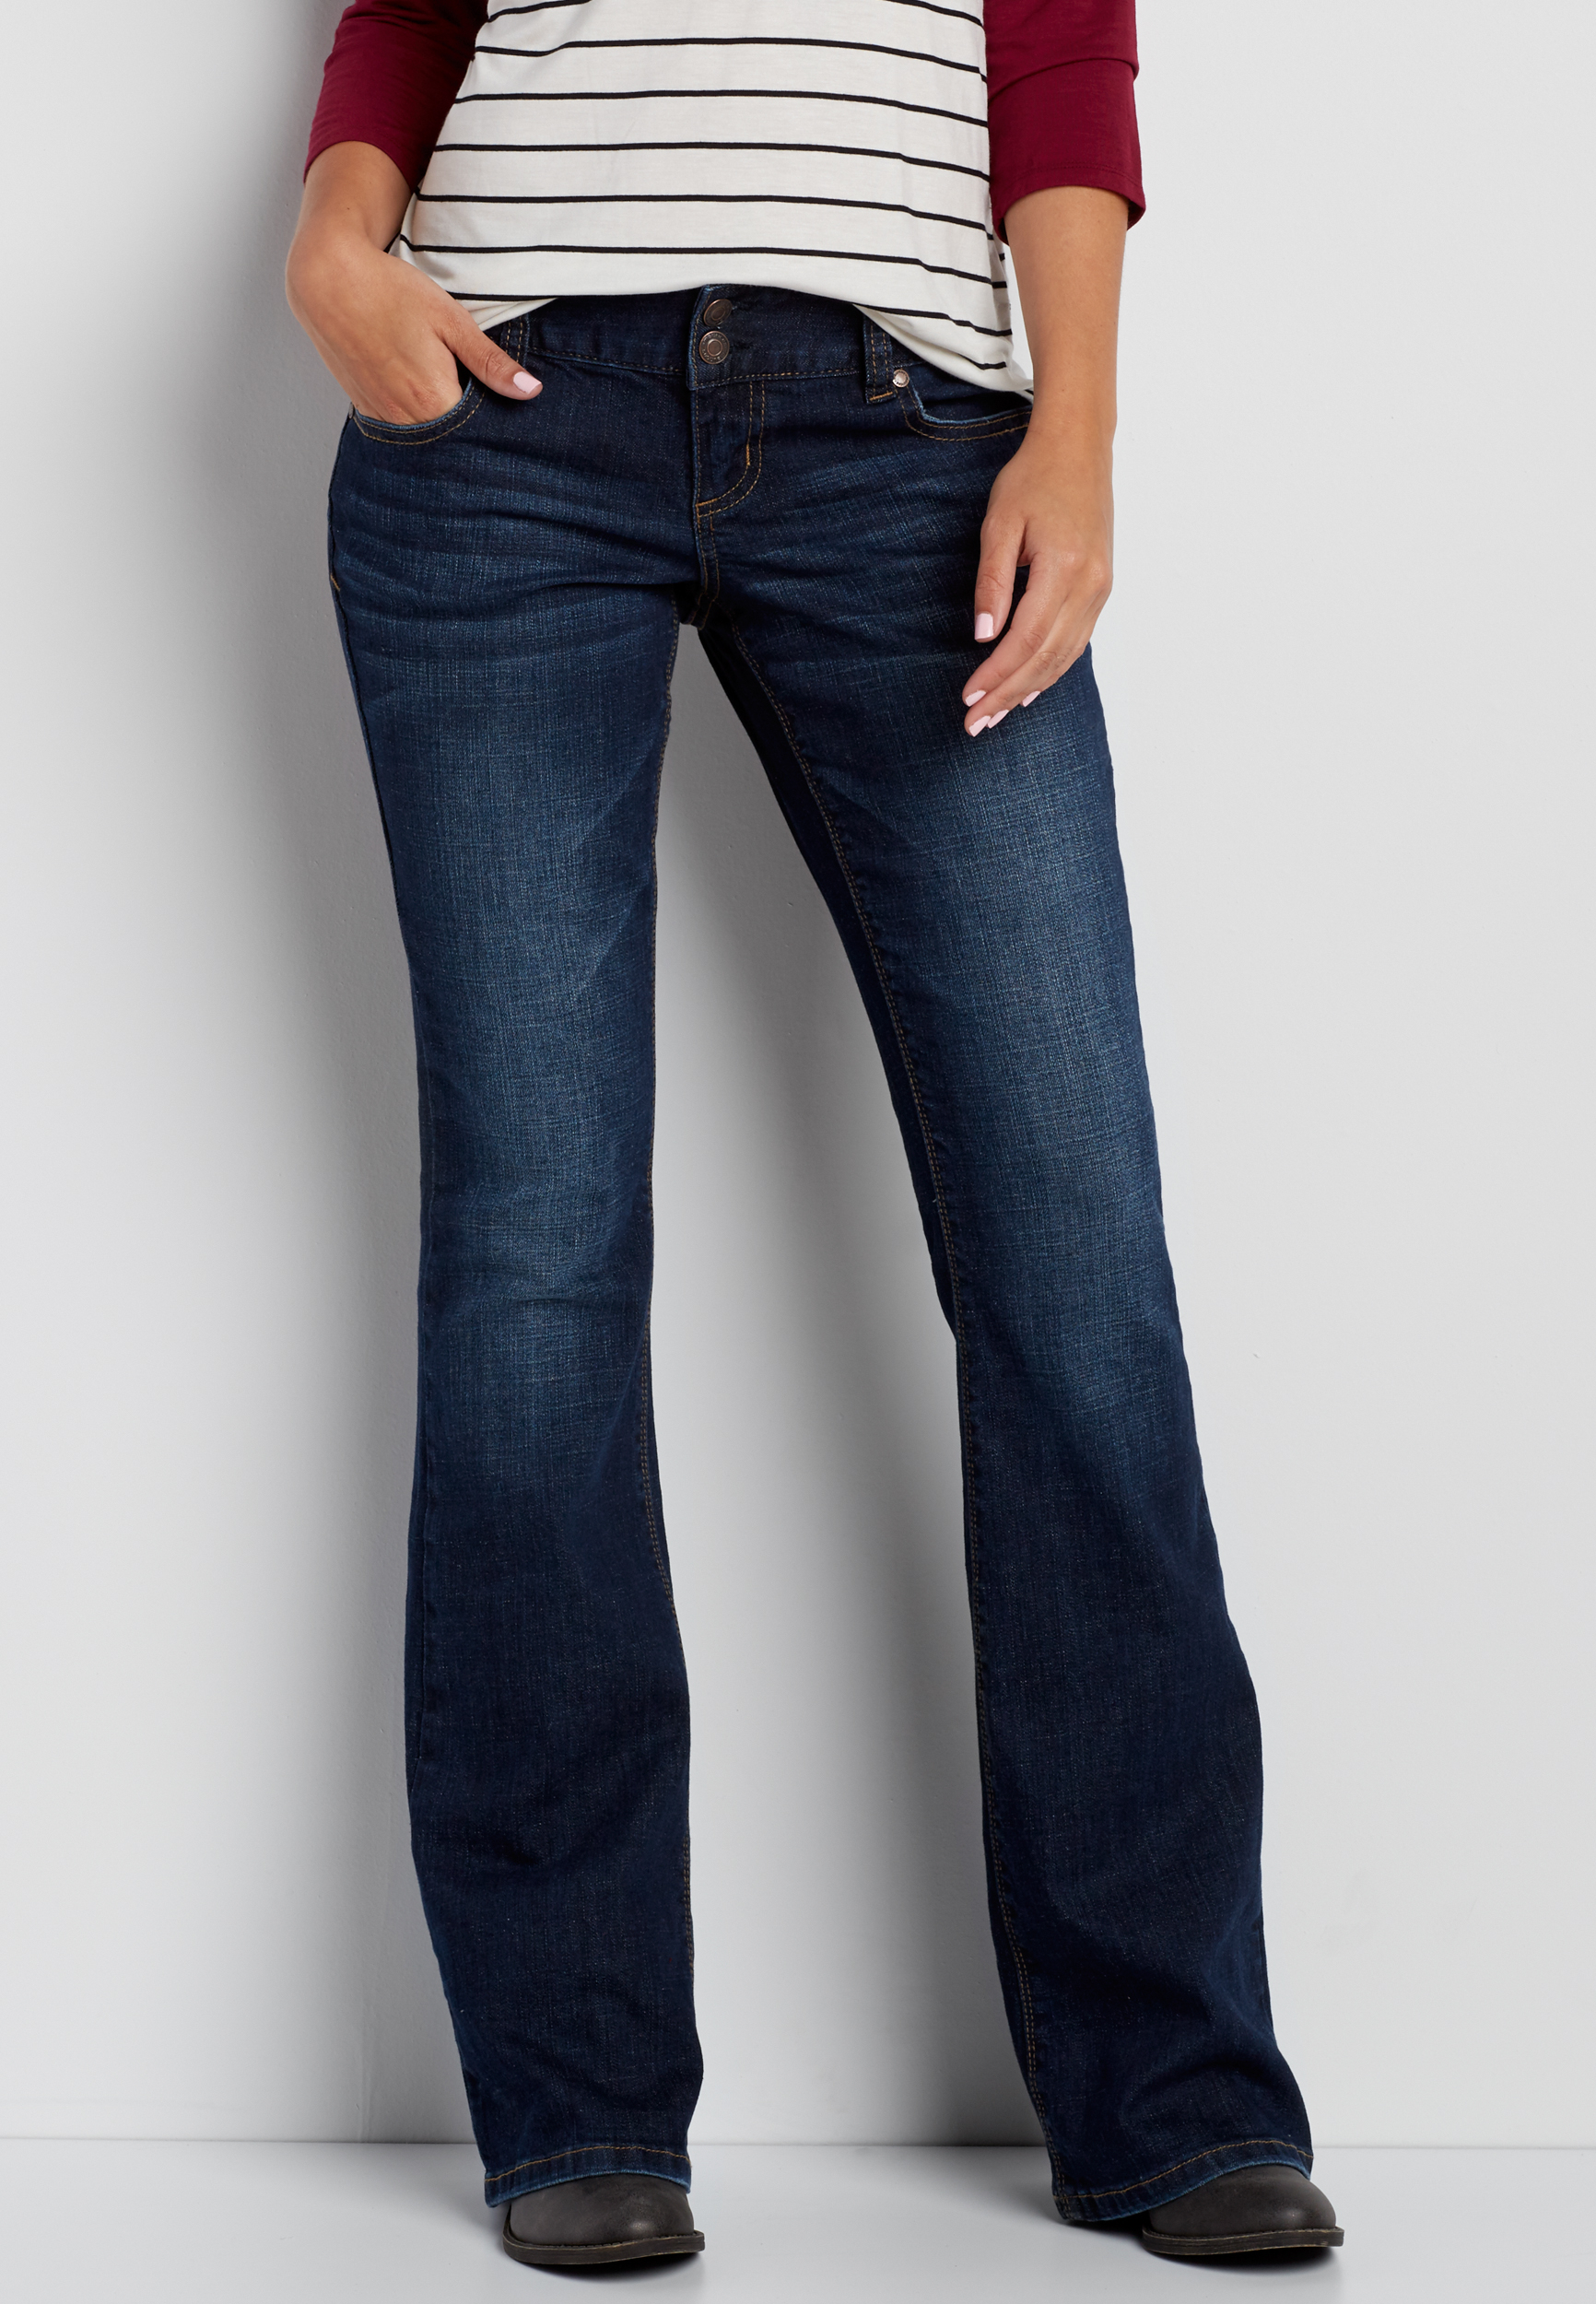 kaylee two button flare jeans in dark wash EUDKGSV